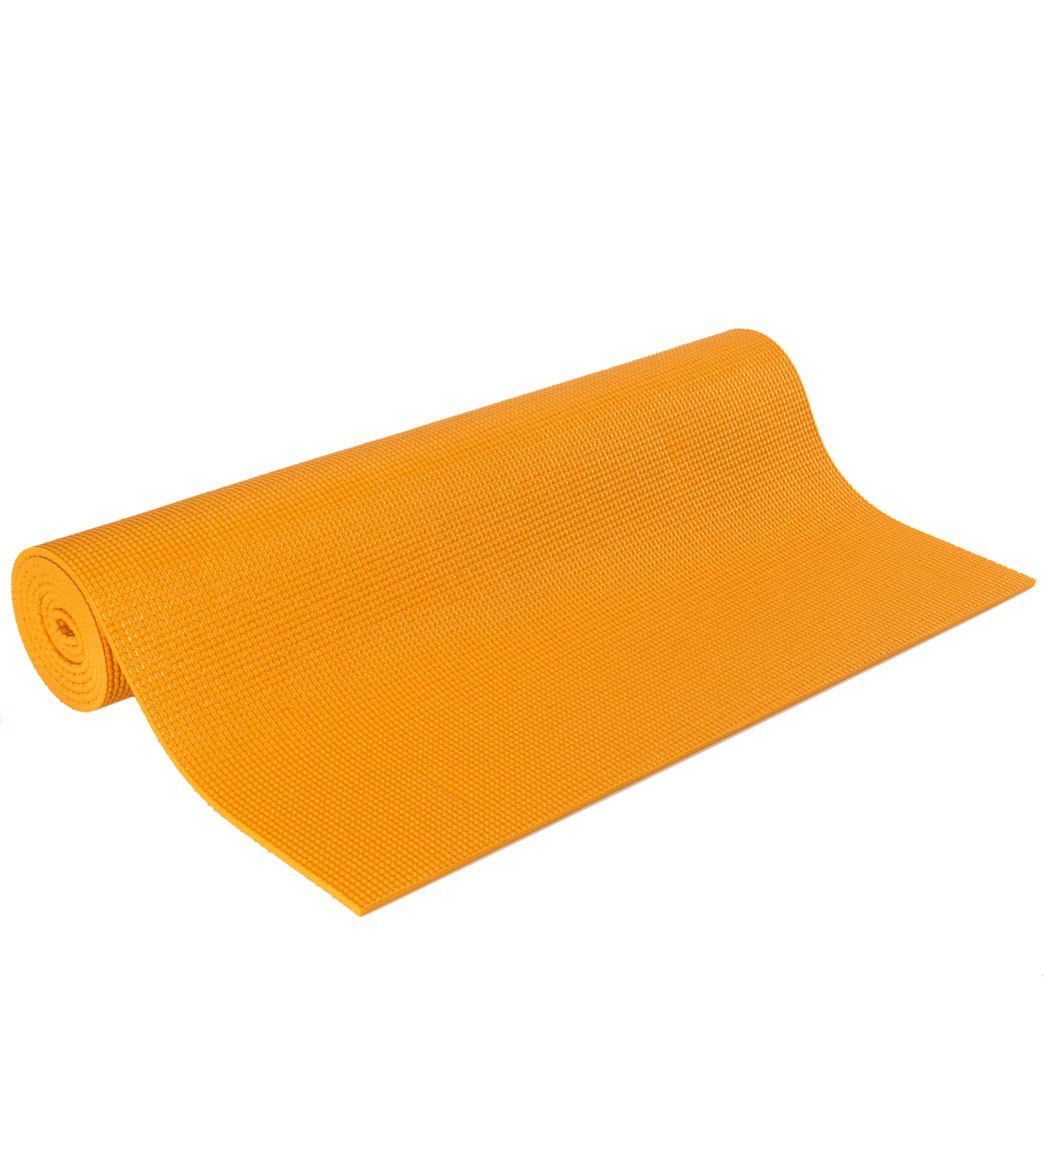 Image result for Everyday Yoga 5mm Yoga Mat